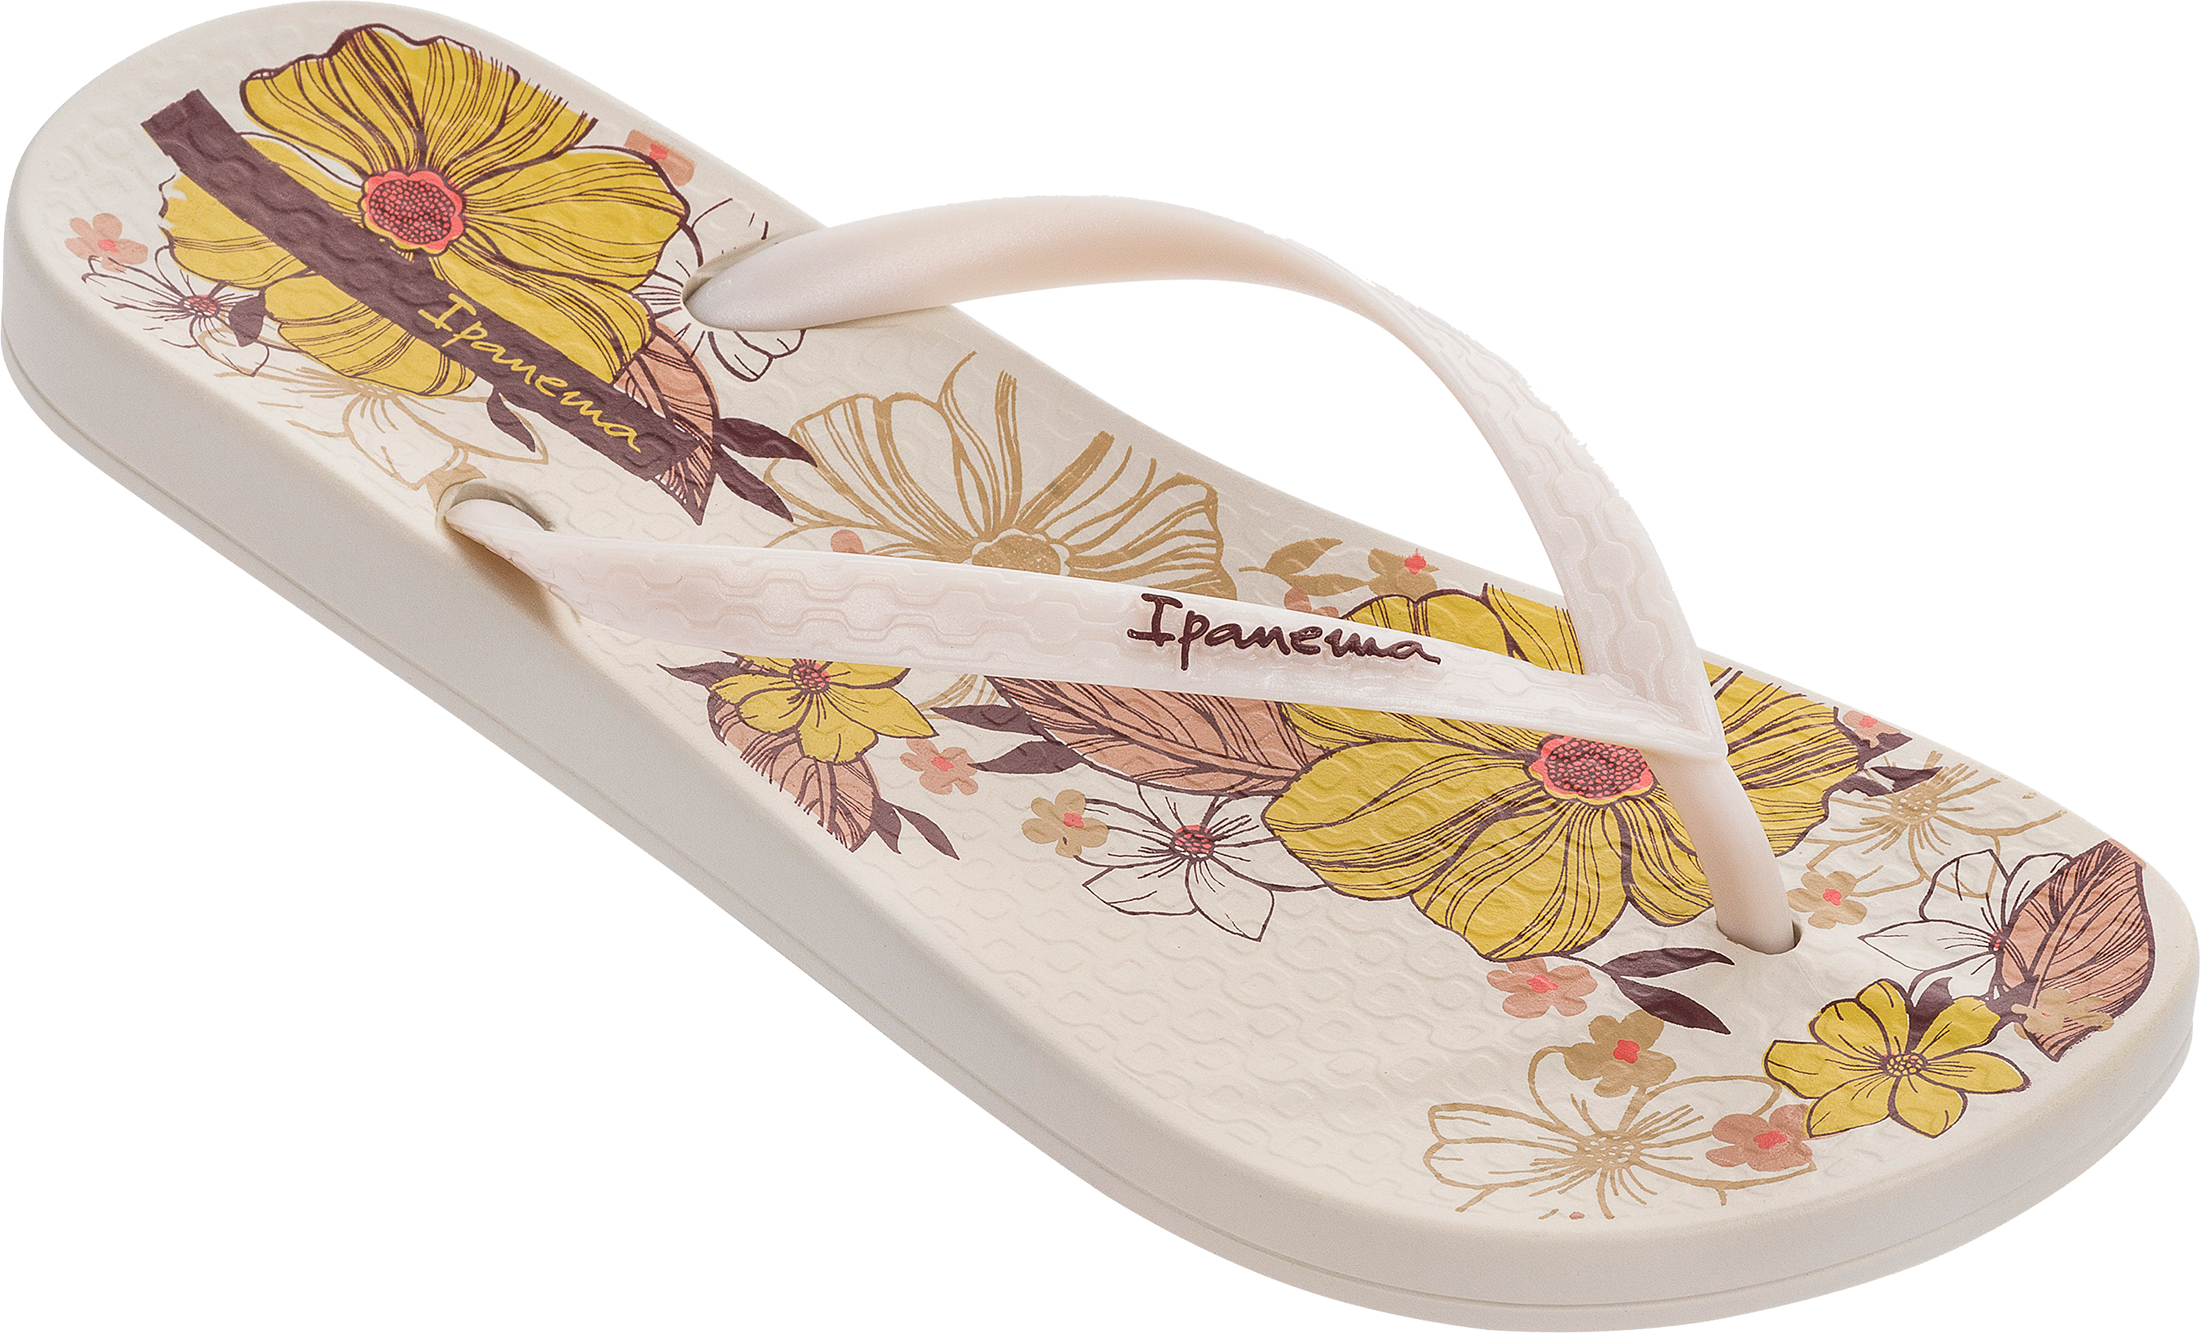 d55a048d2 Ipanema Anatomica Temas Ladies Womens Summer Beach Pool Sandals Flip Flops  Ivory 37. About this product. Picture 1 of 2  Picture 2 of 2